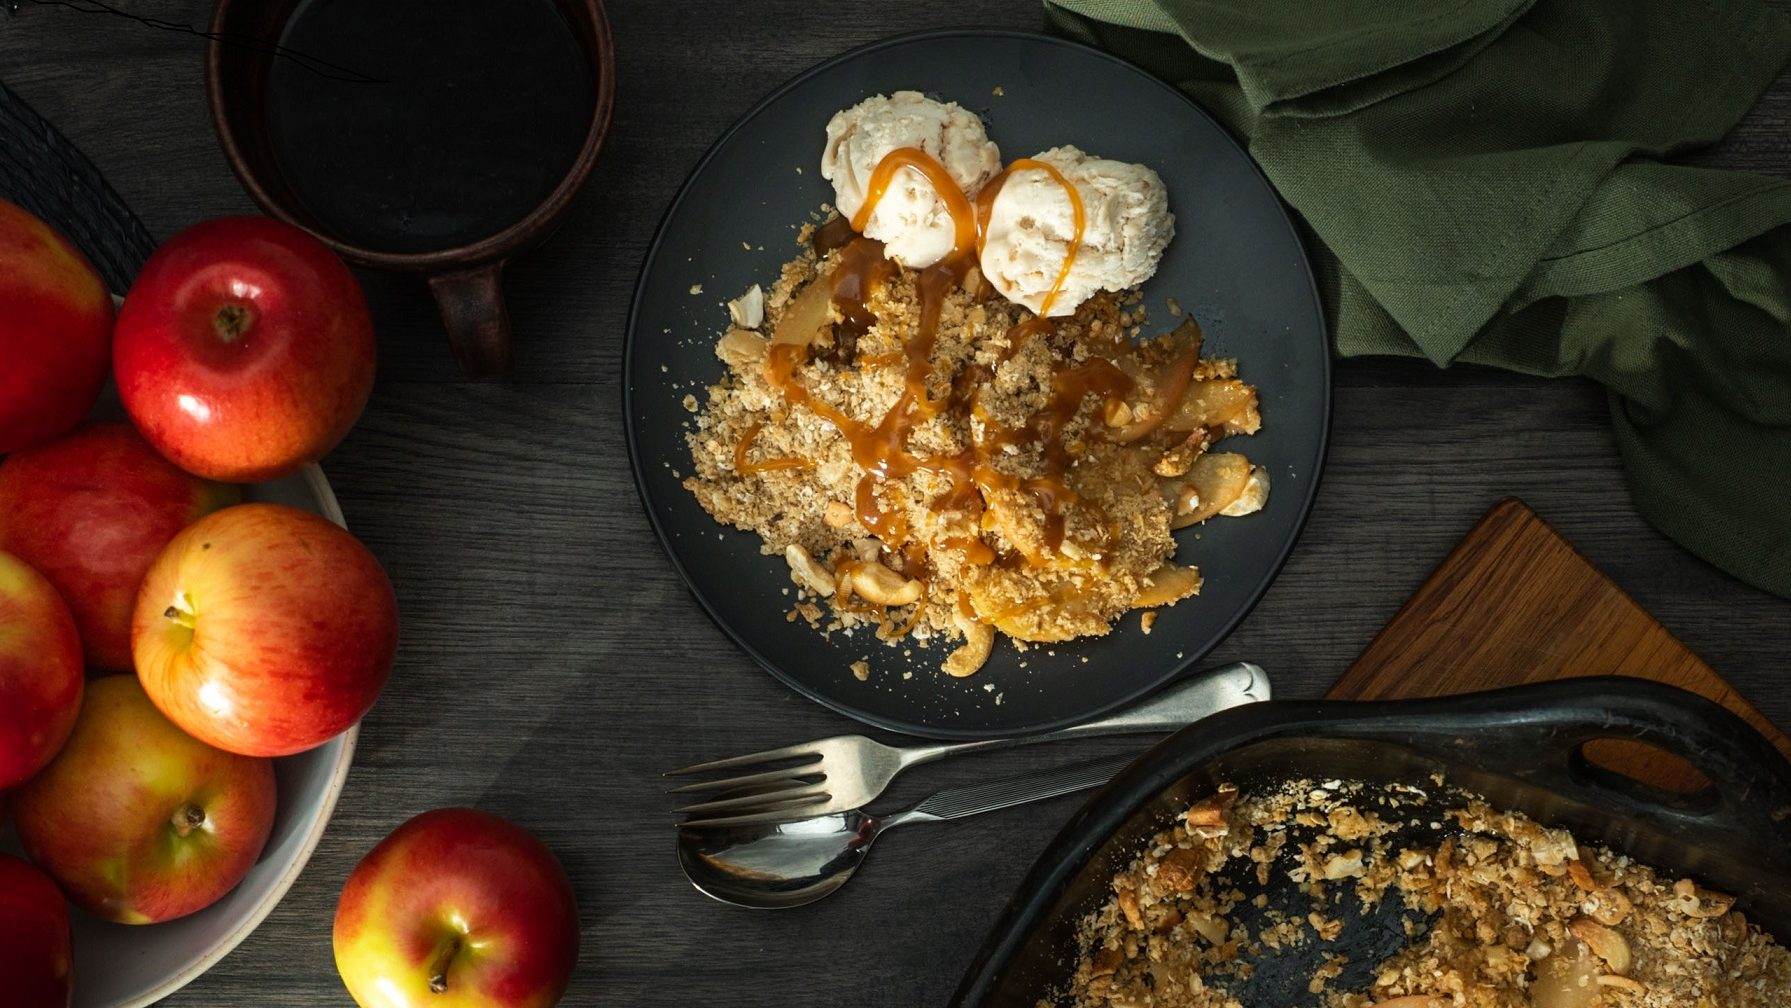 Several red apples in a bowl on left, brown crumble with two scoops of ice cream drizzled with brown sauce on blue plate in middle and black baking dish with crumble on right.